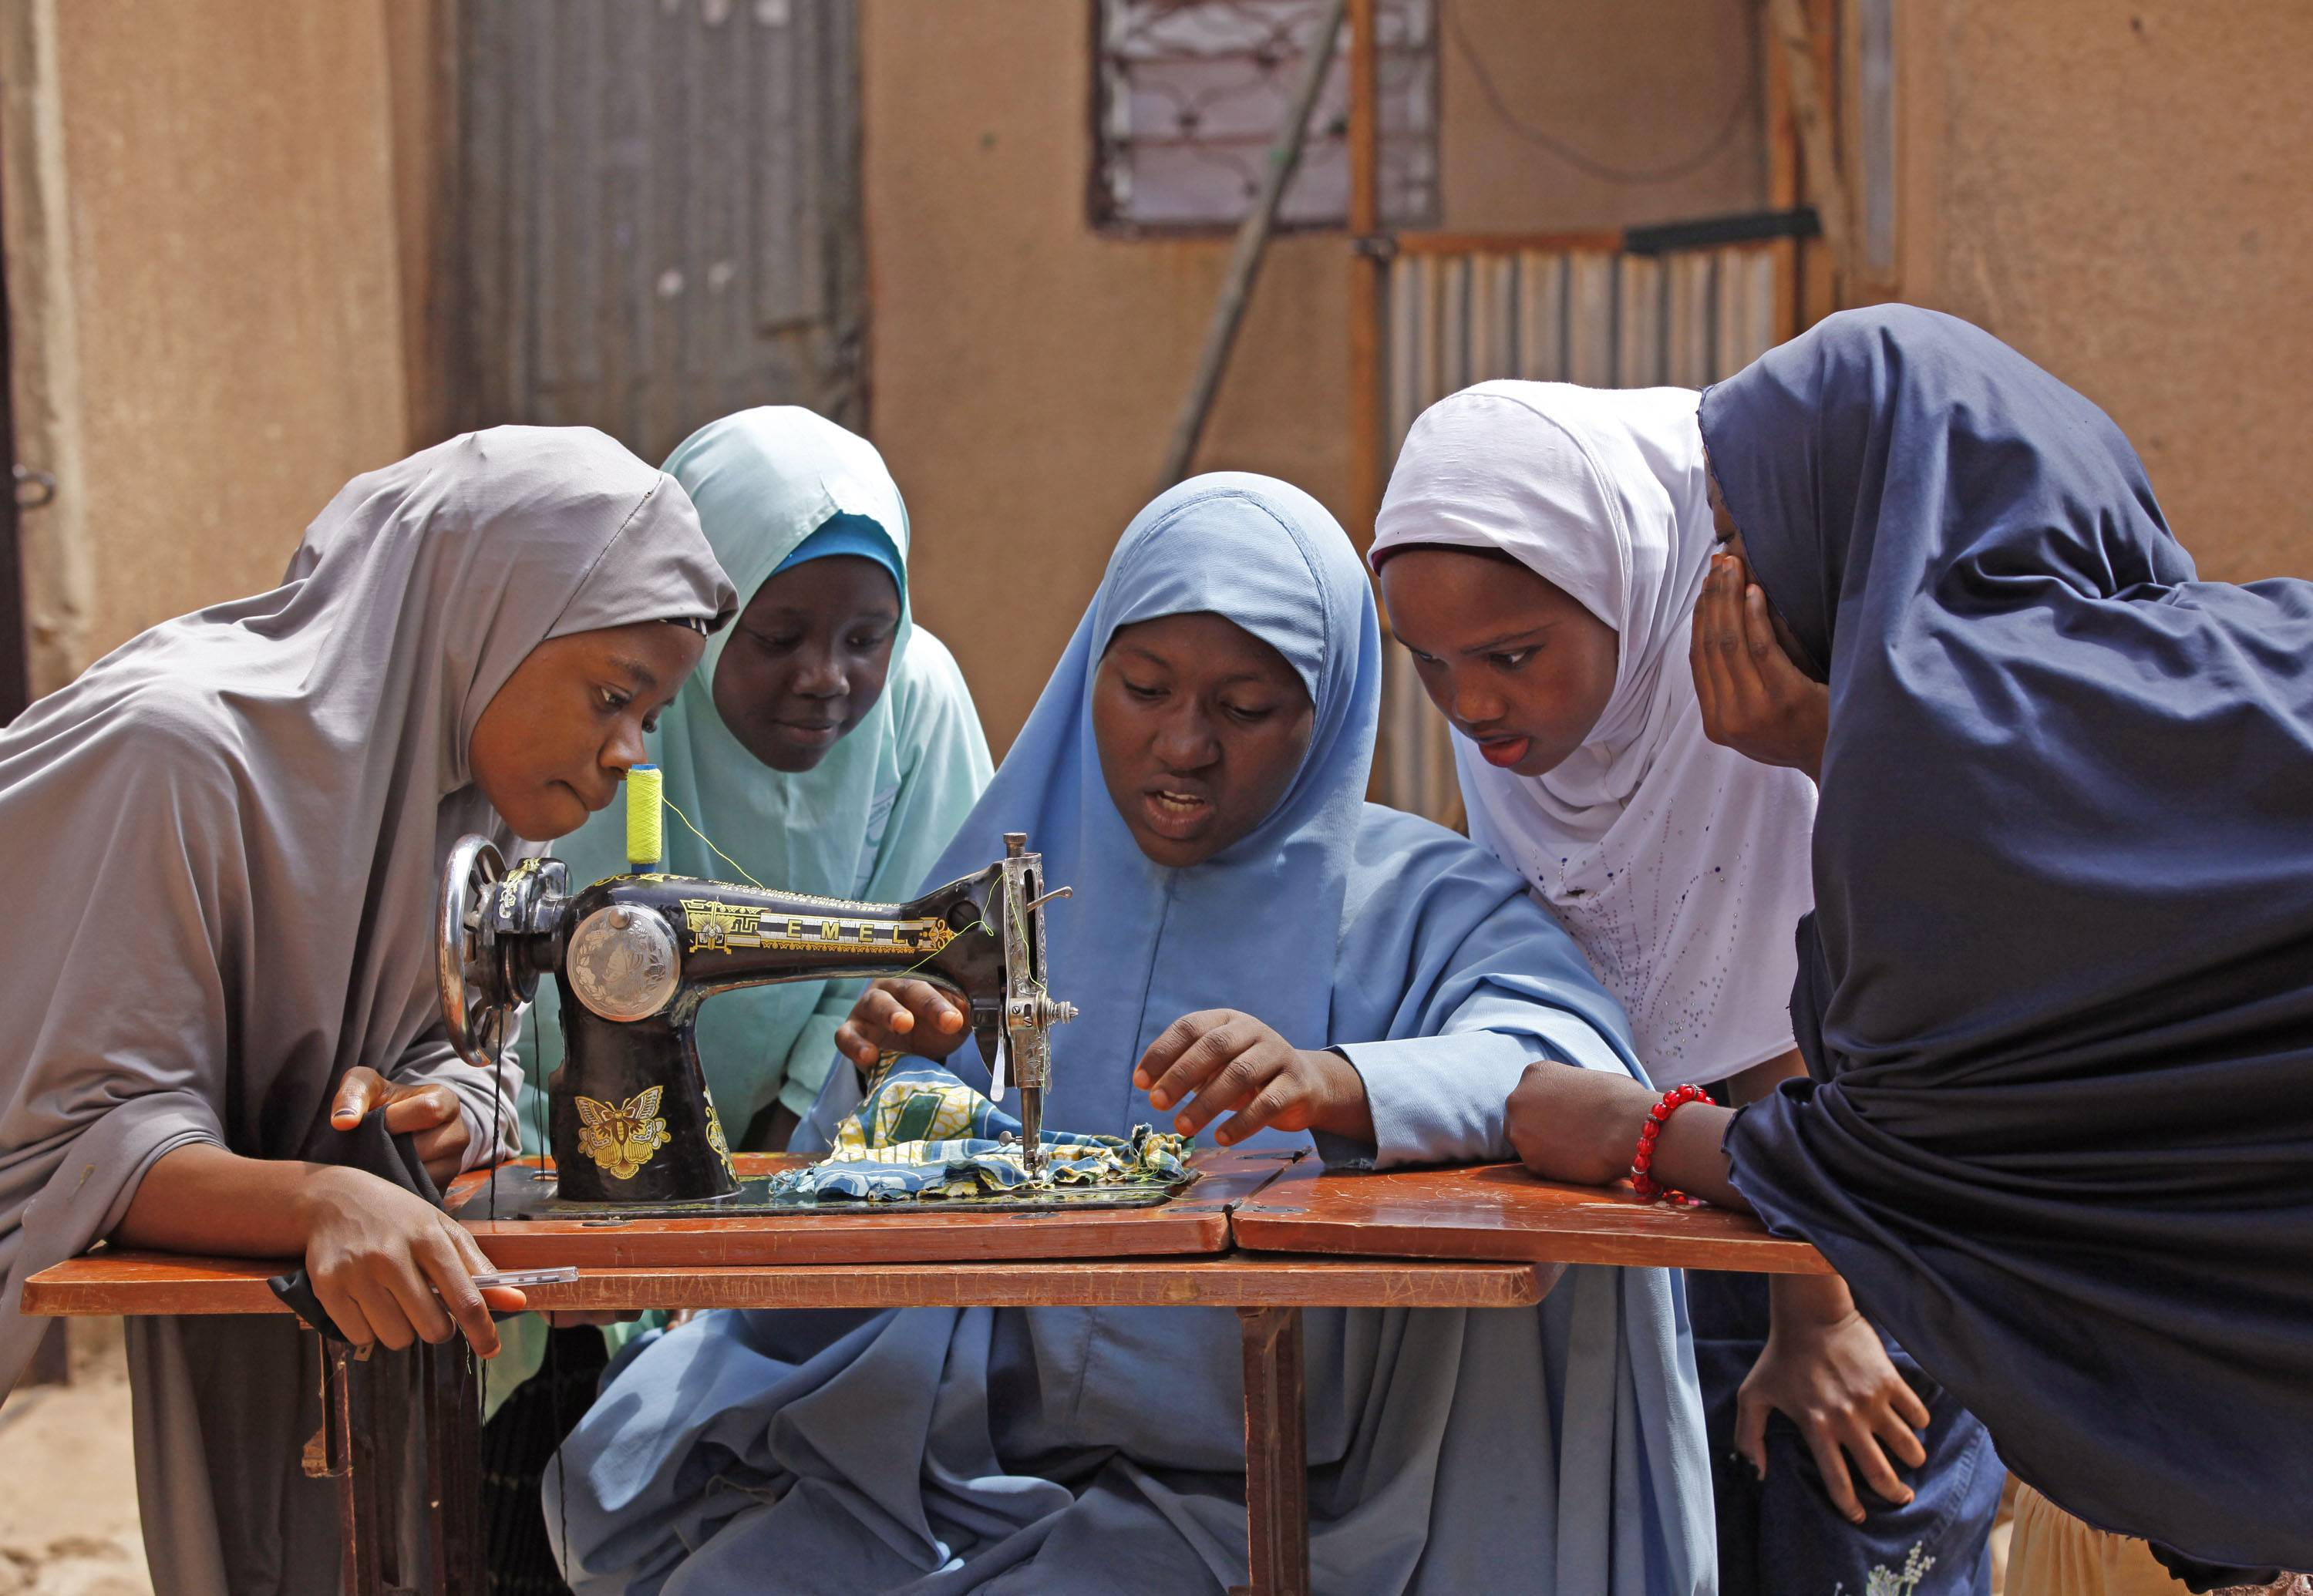 On May 31, Maimuna Abdullahi, center, speaks to classmates as she sews clothes during class at her school in Kaduna, Nigeria. Maimuna wore the scars of an abused woman anywhere: A swollen face, a starved body, and, barely a year after her wedding, a divorce. But for Maimuna, it all happened by the time she was 14. Maimuna is one of thousands of divorced girls in Nigeria who were married as children and then got thrown out by their husbands or simply fled.